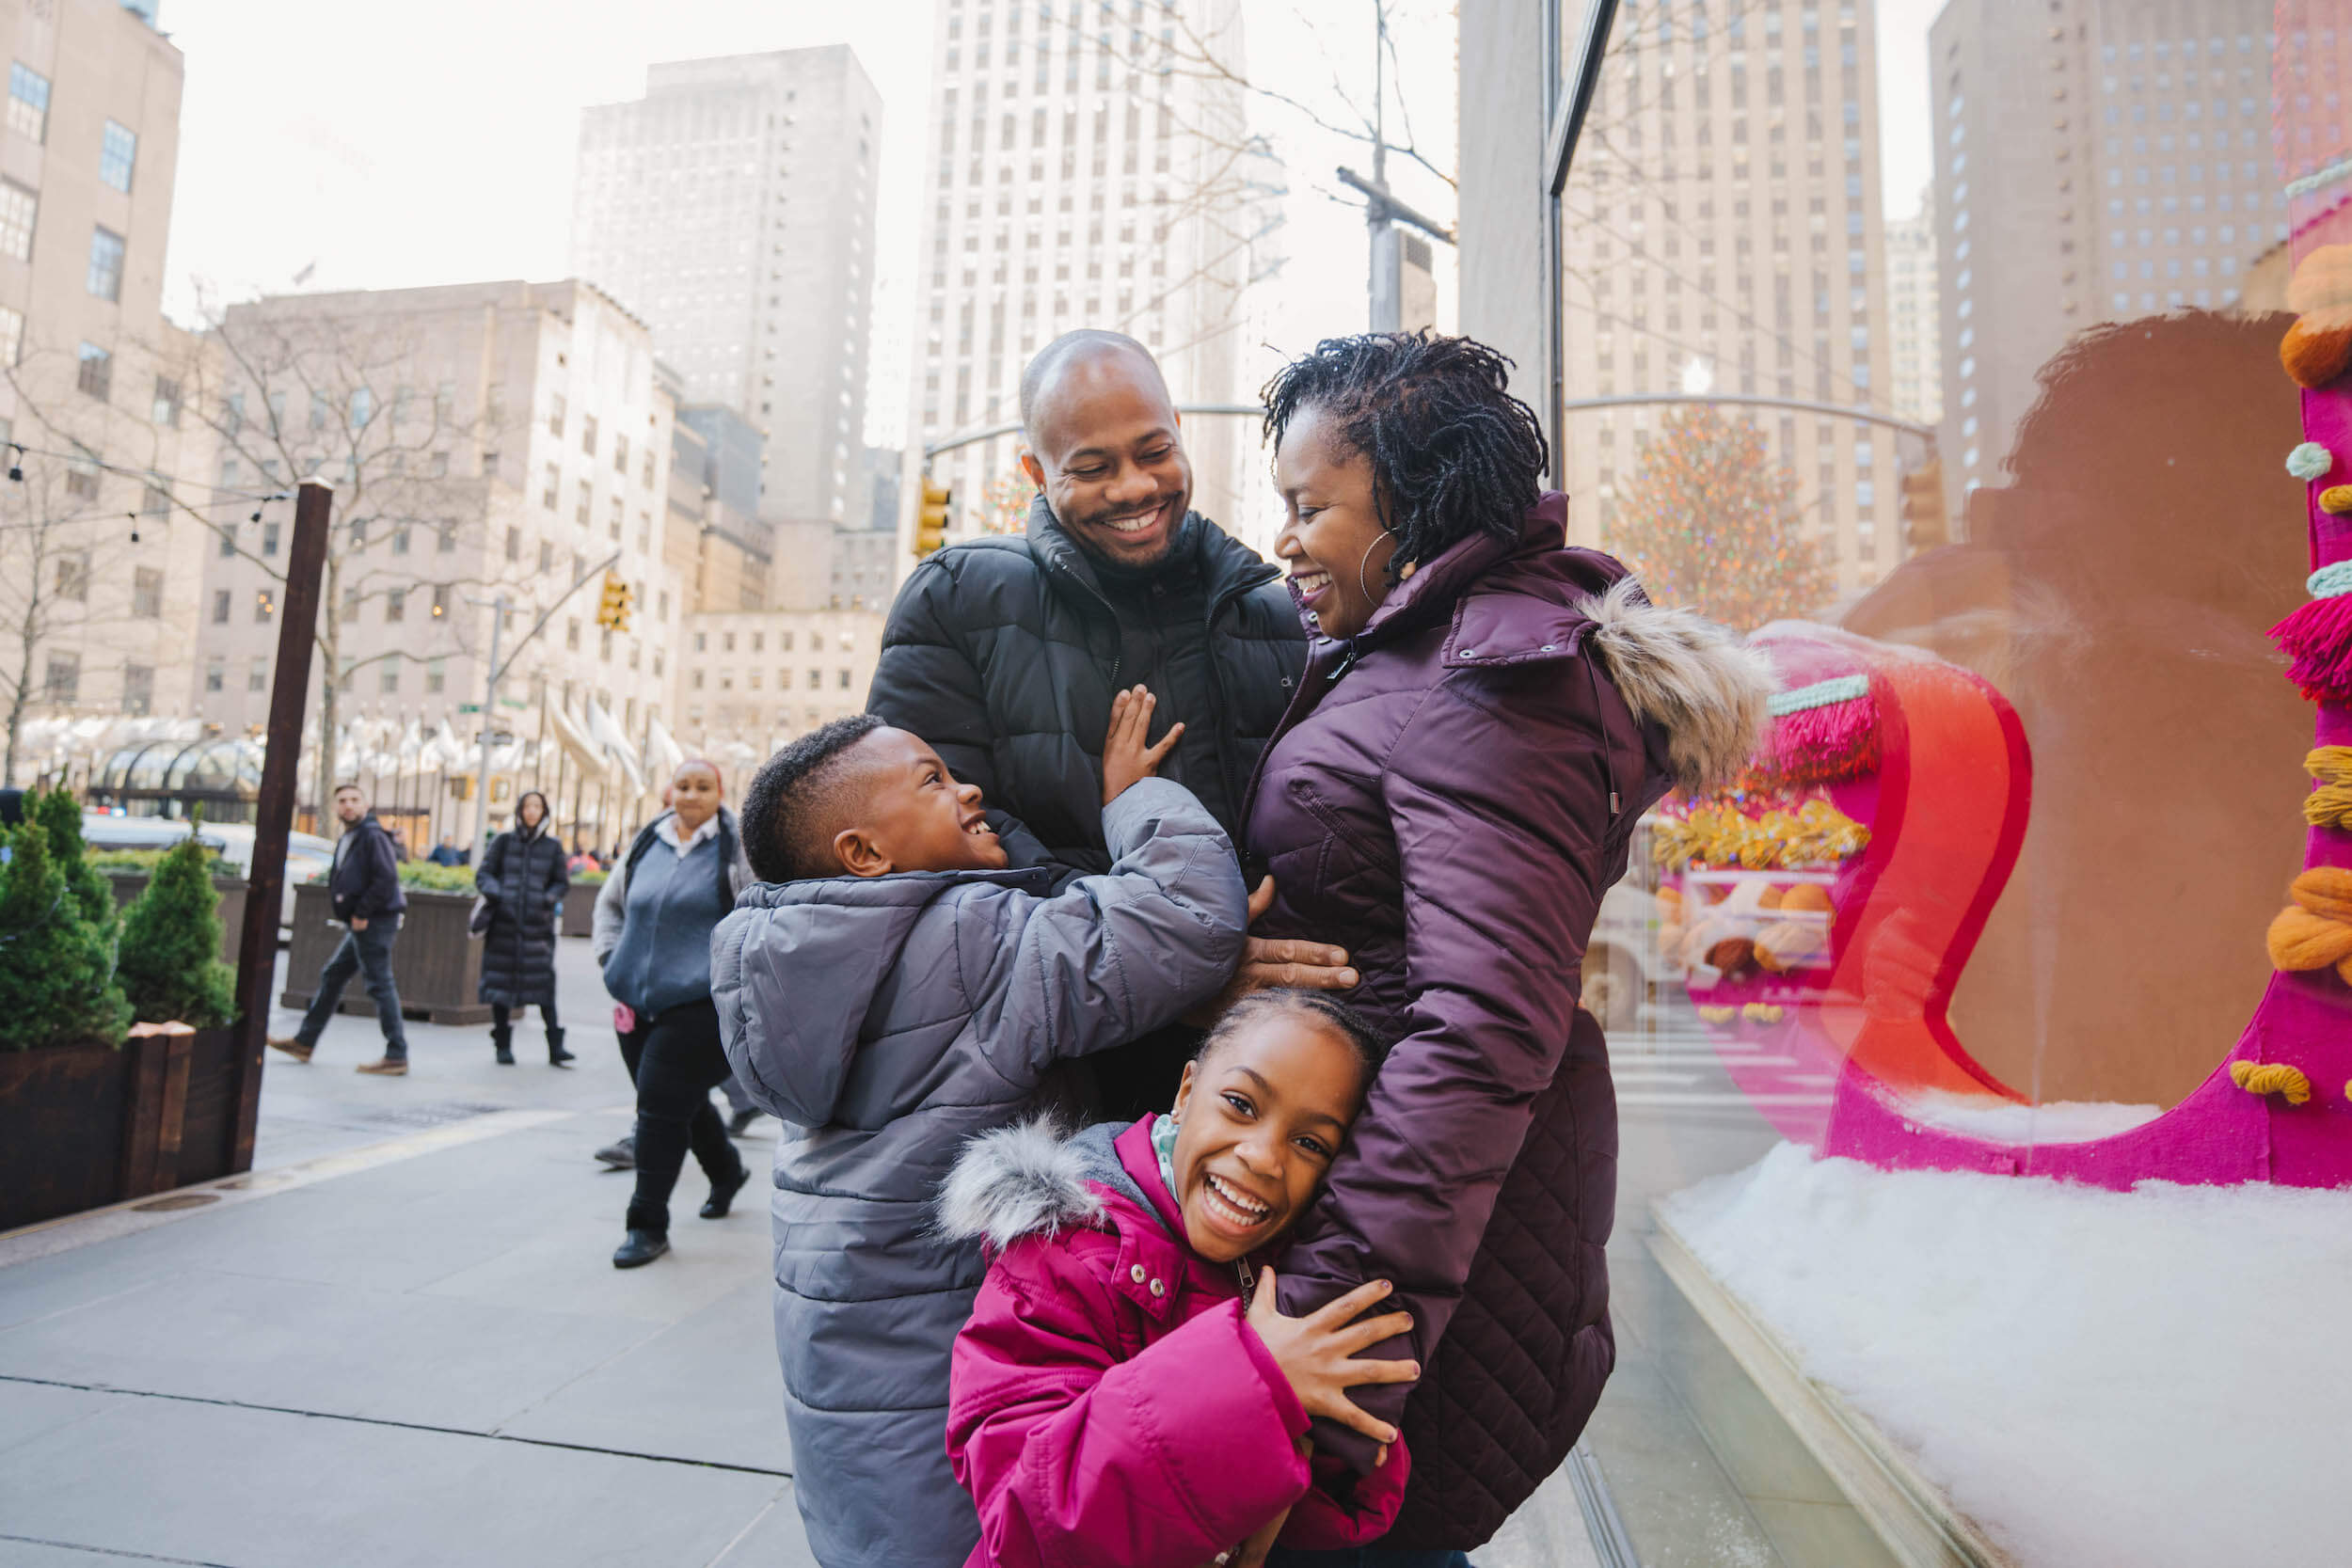 Family vacation in New York City USA